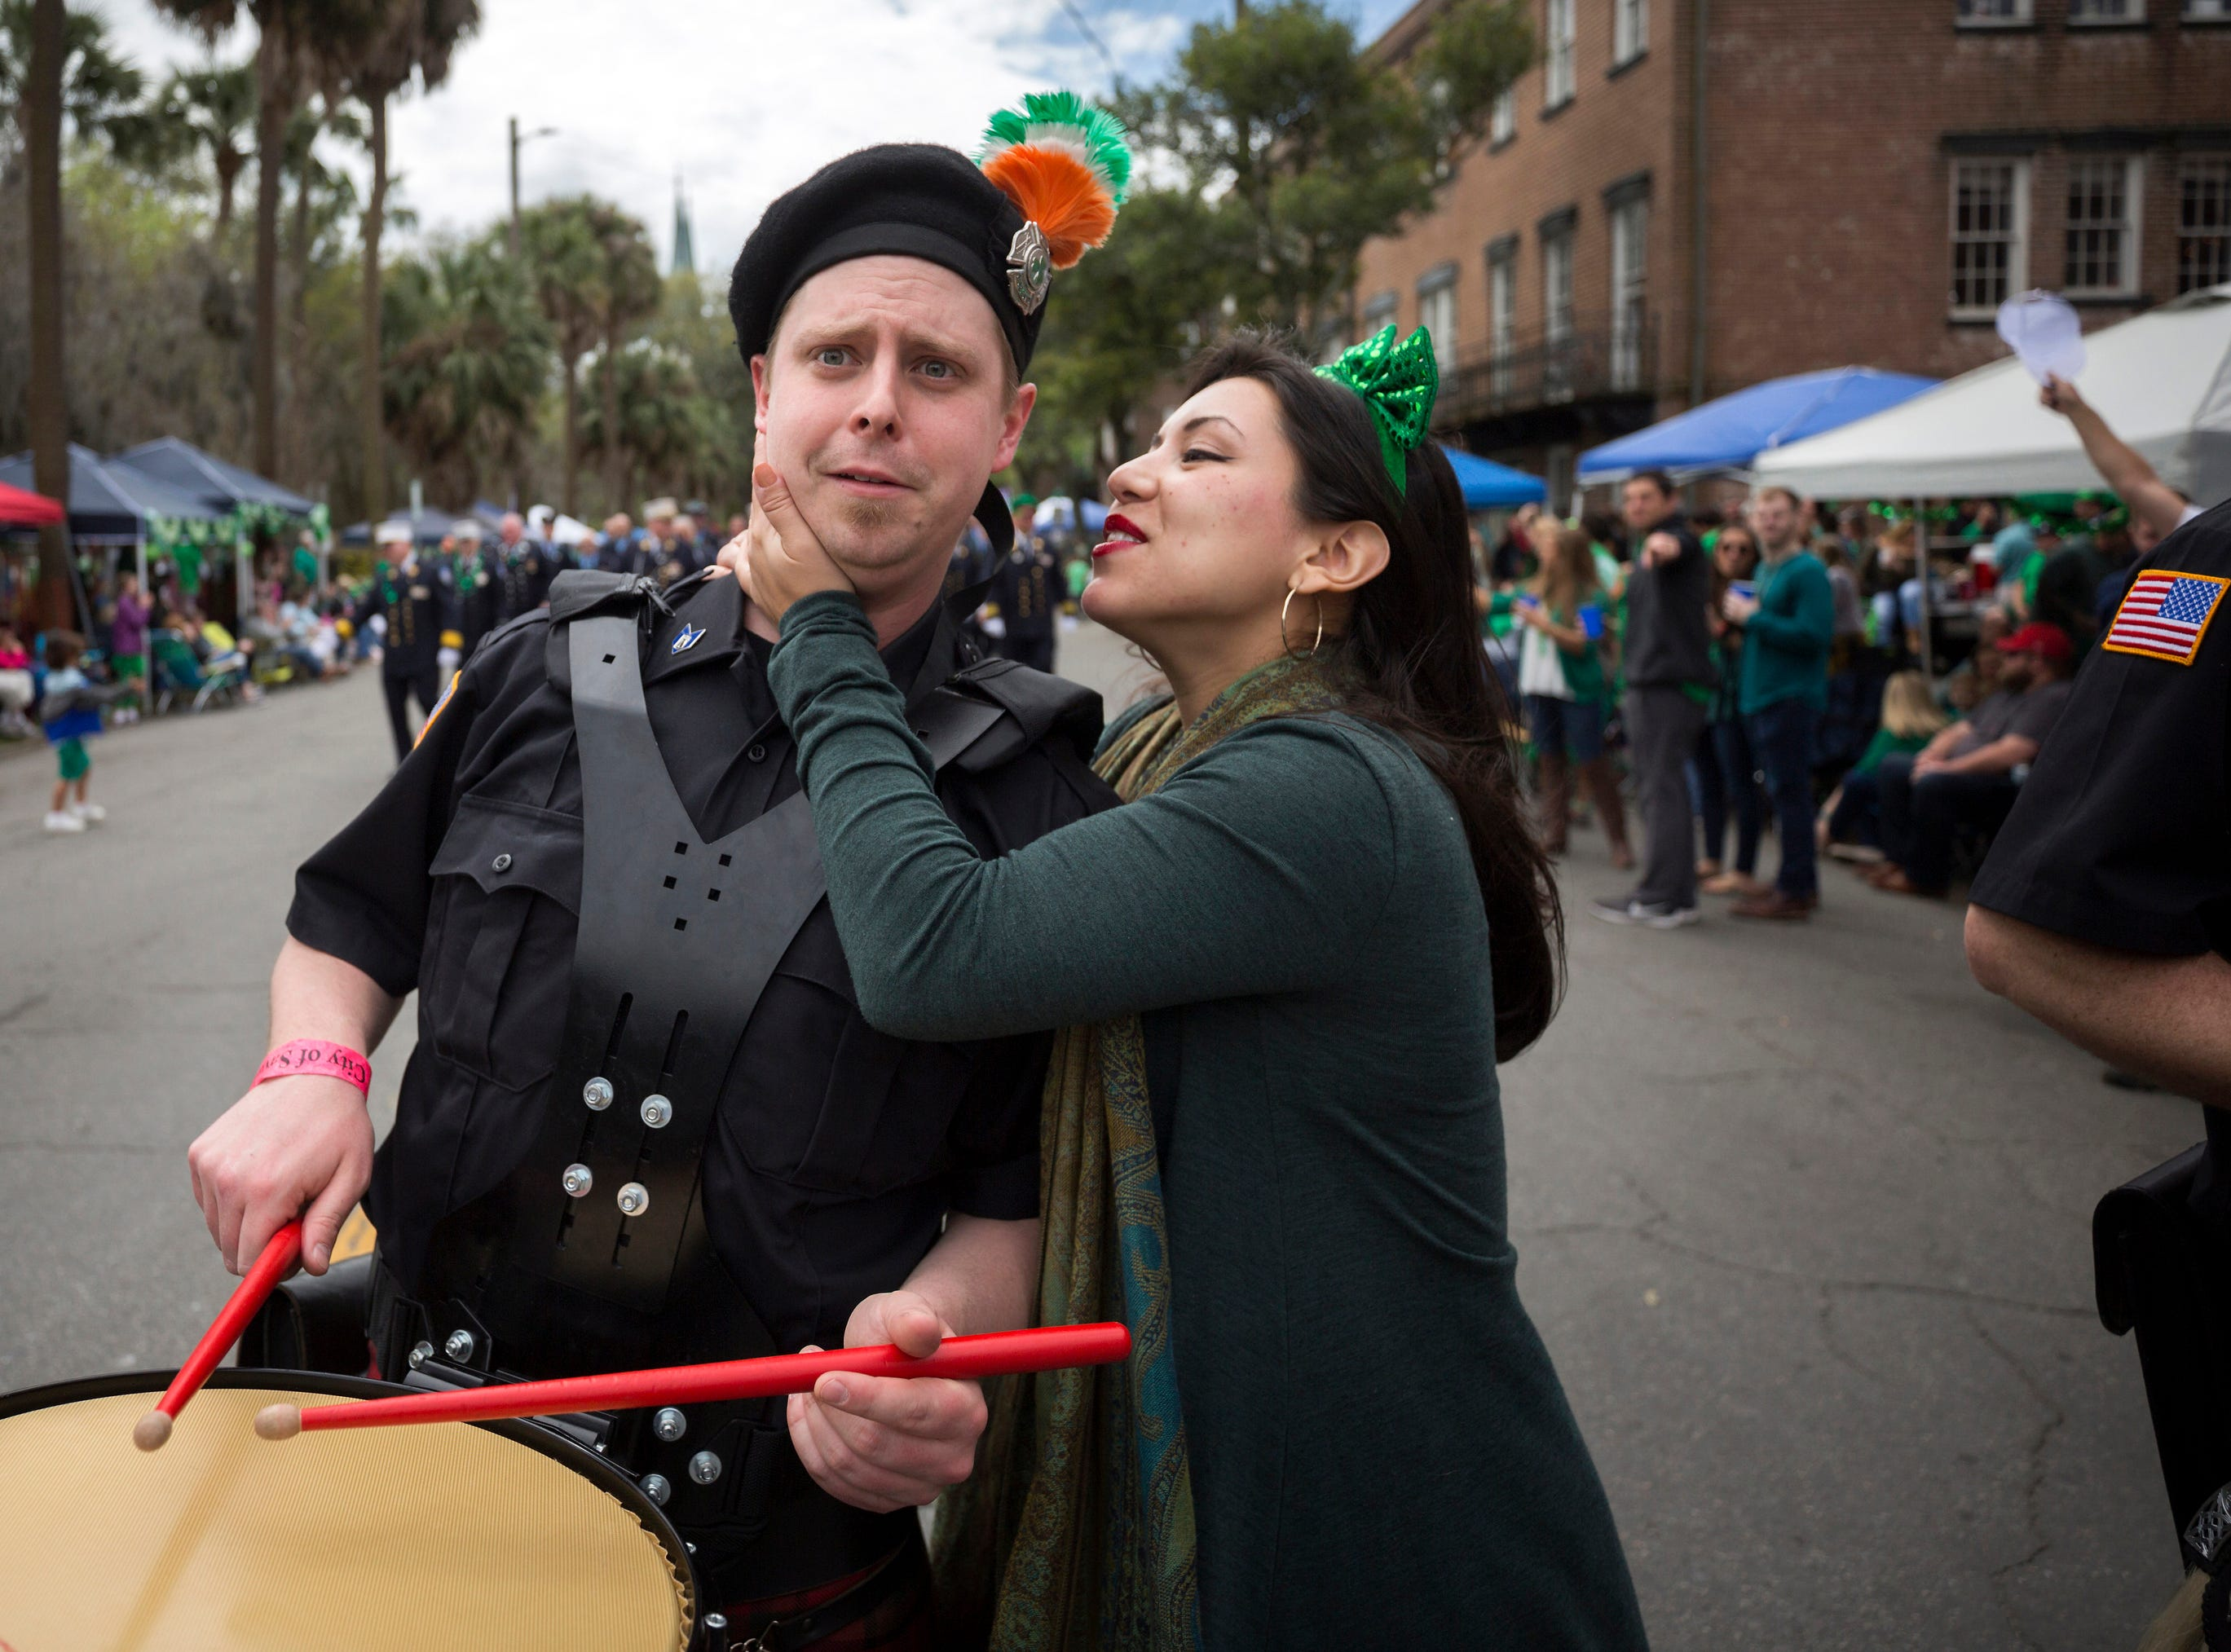 A Yonkers Fire Pipe and Drum drummer reacts to being kissed by Kayla DeJesus, right, while he marches in the 195-year-old Savannah St. Patrick's Day parade, Saturday, March 16, 2019, in Savannah, Ga.